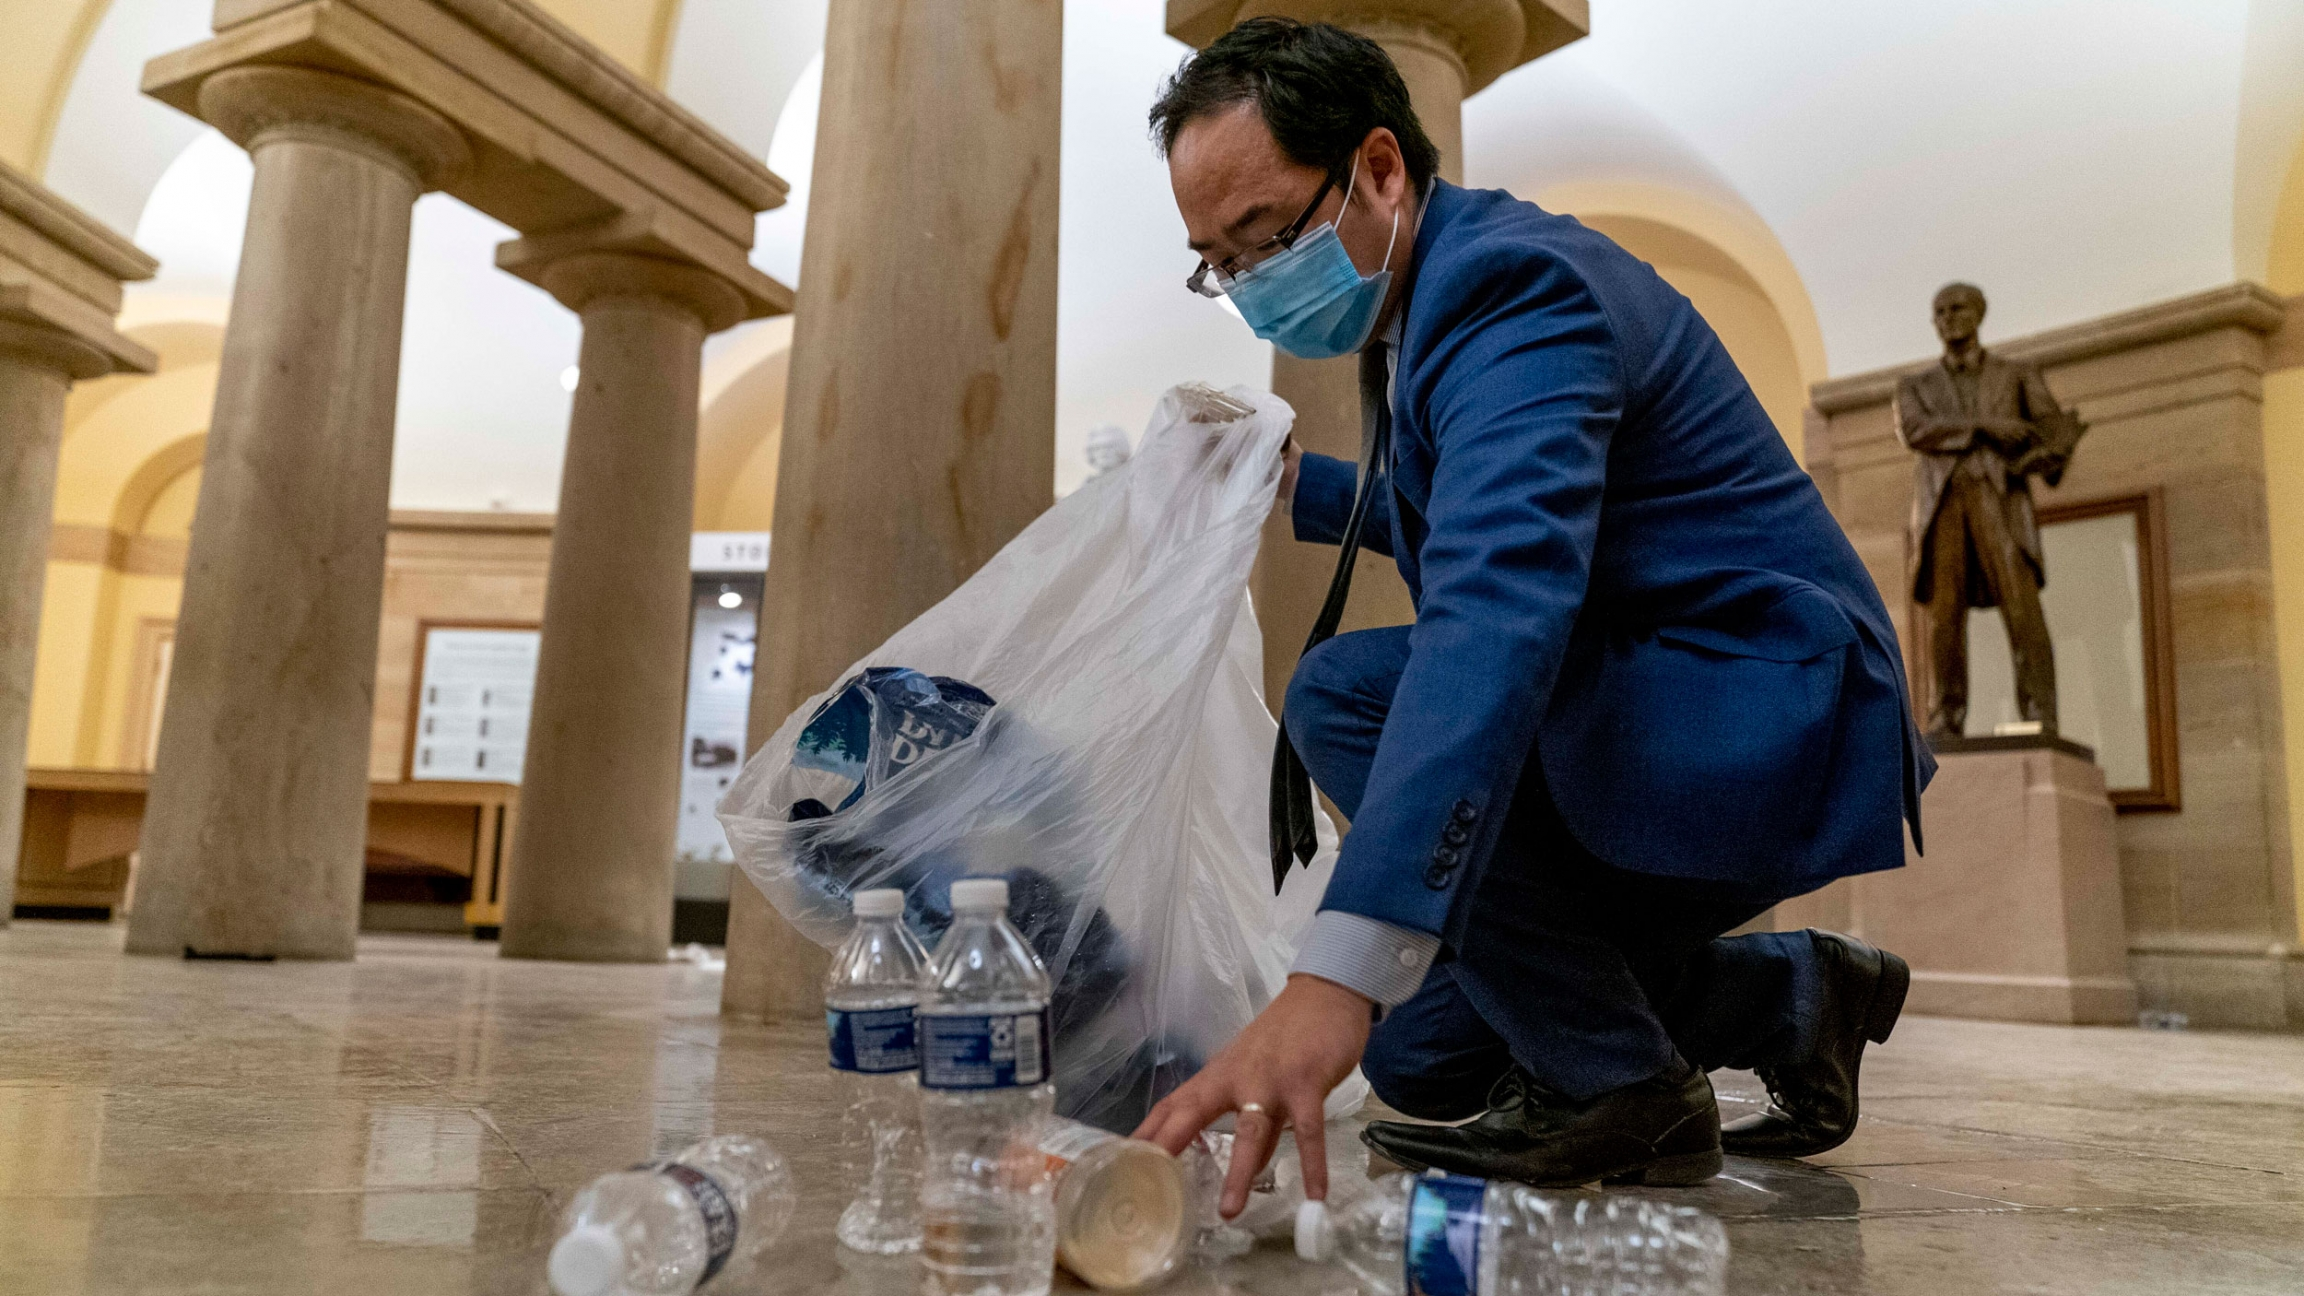 Rep. Andy Kim is shown kneeling and with a clear trash back helping clean up debris and trash strewn across the floor.